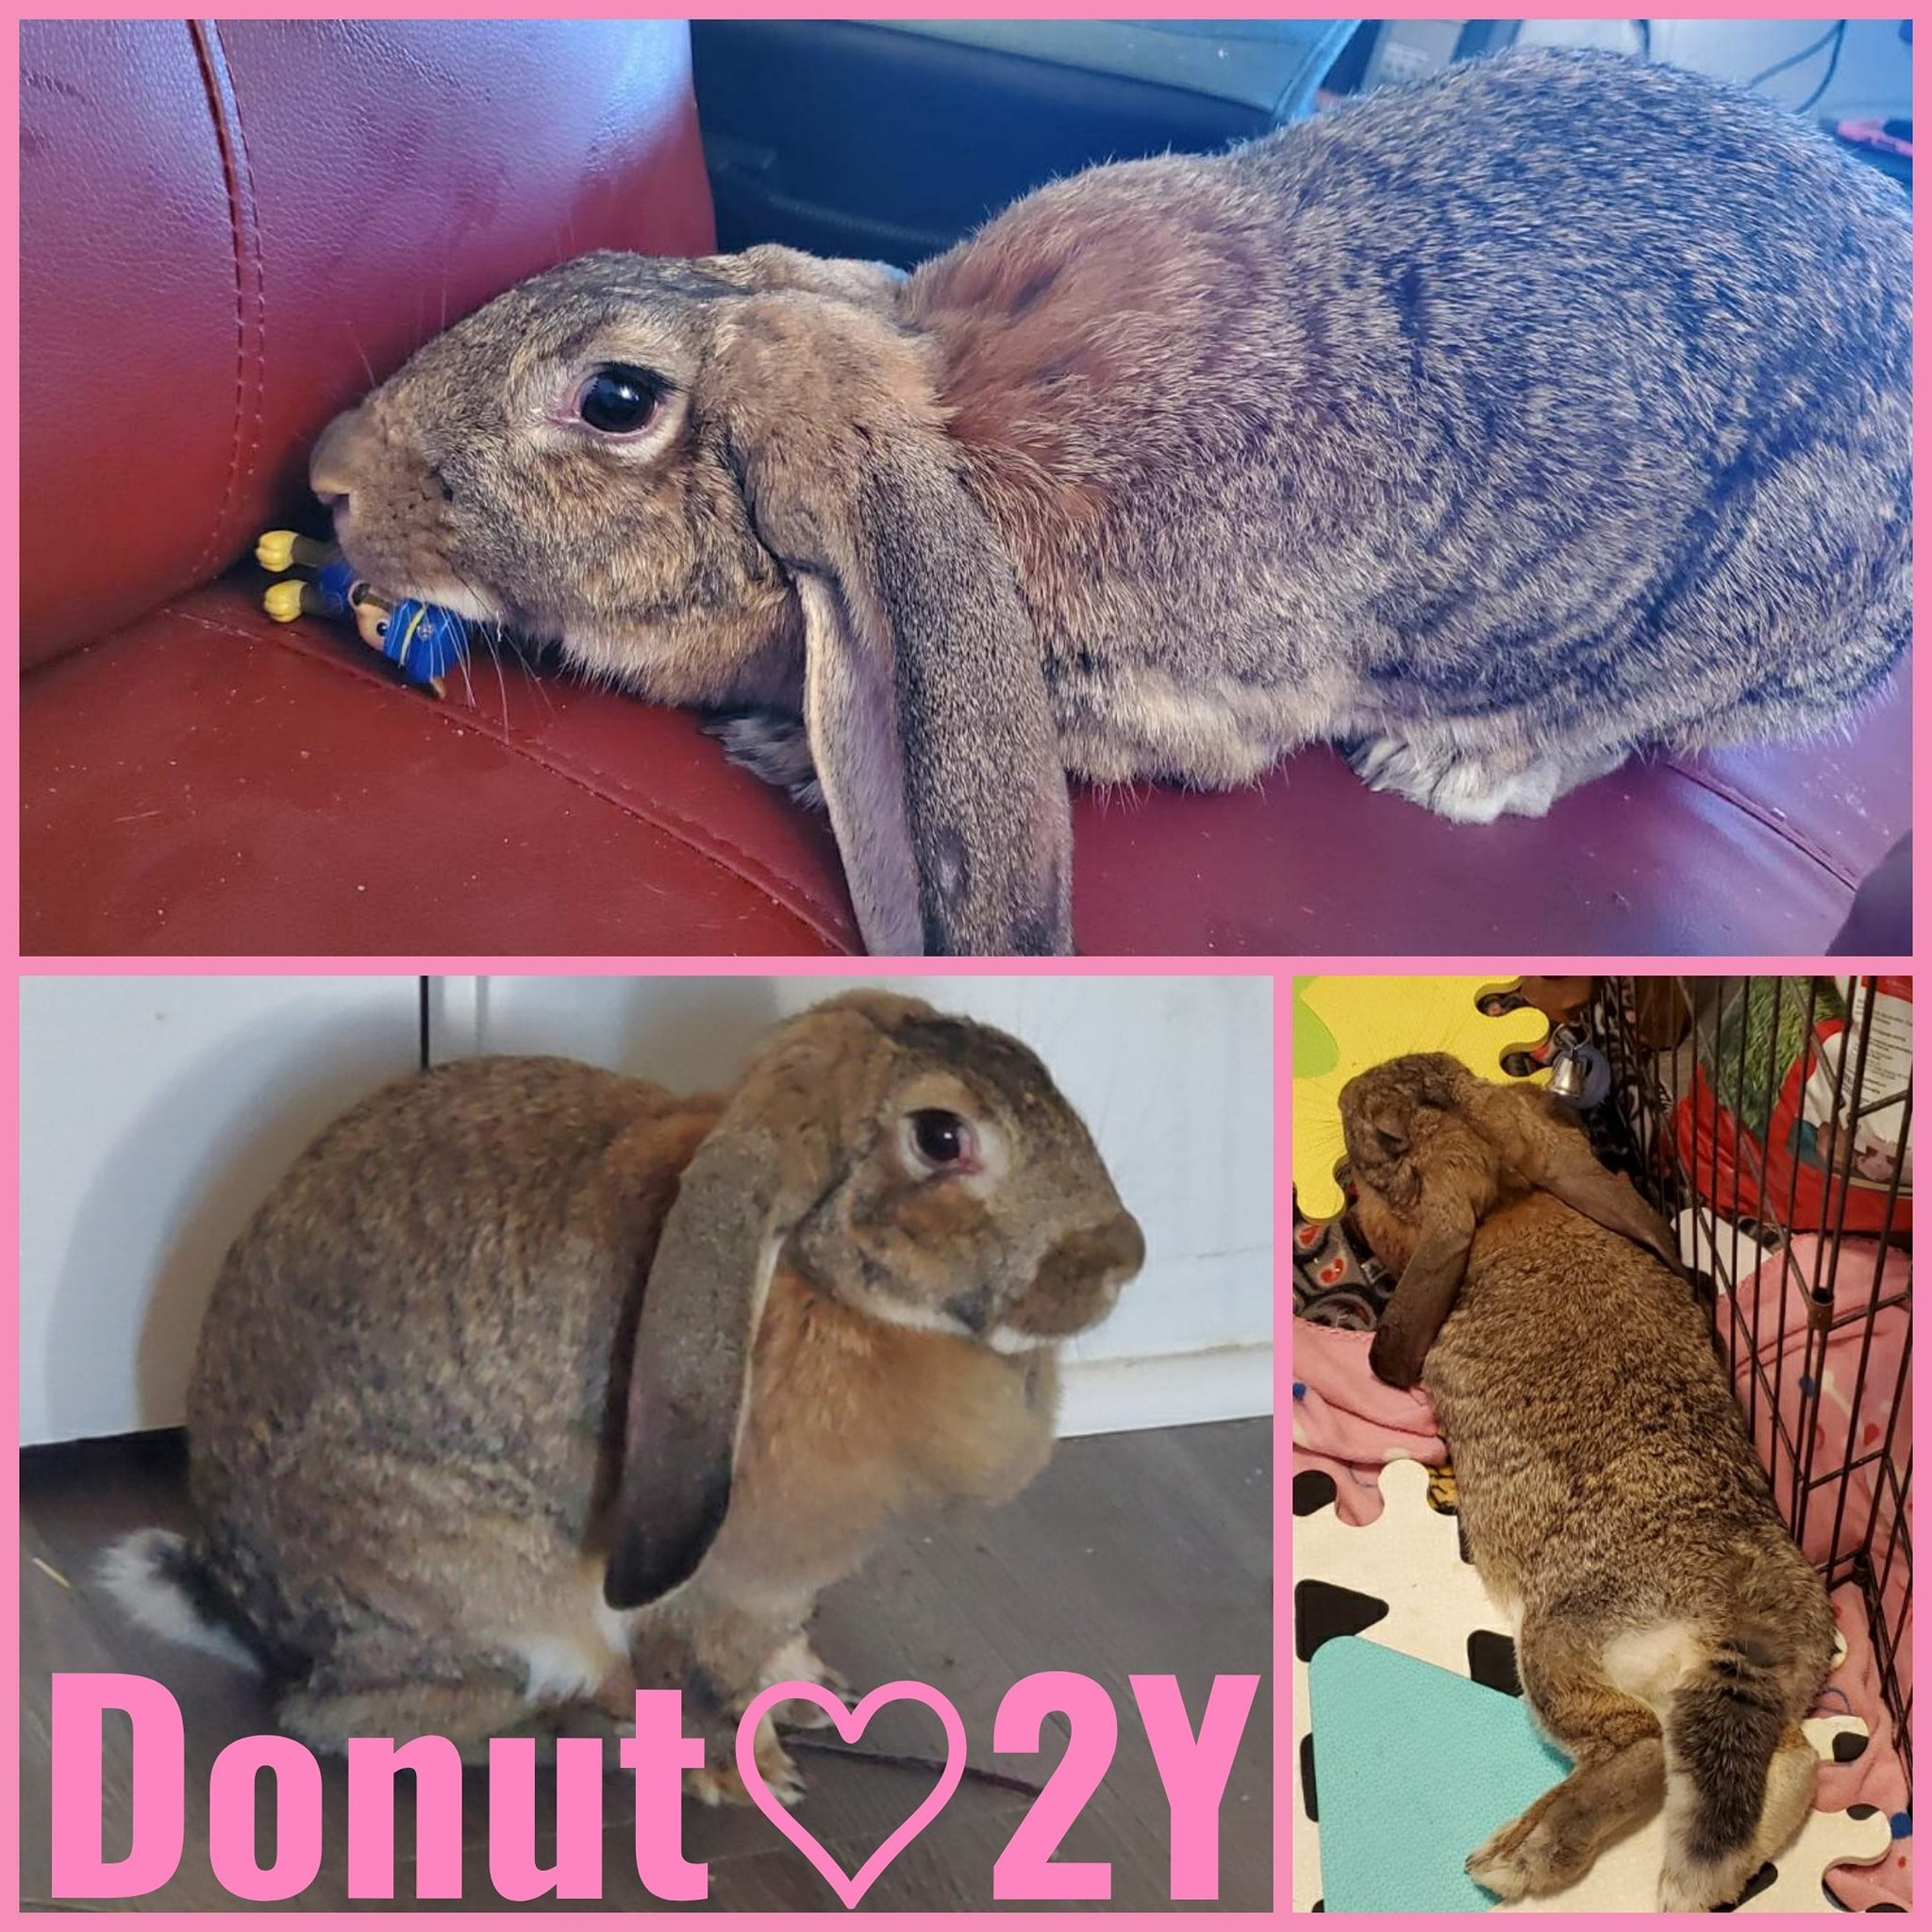 Donut-Female- 2 Years